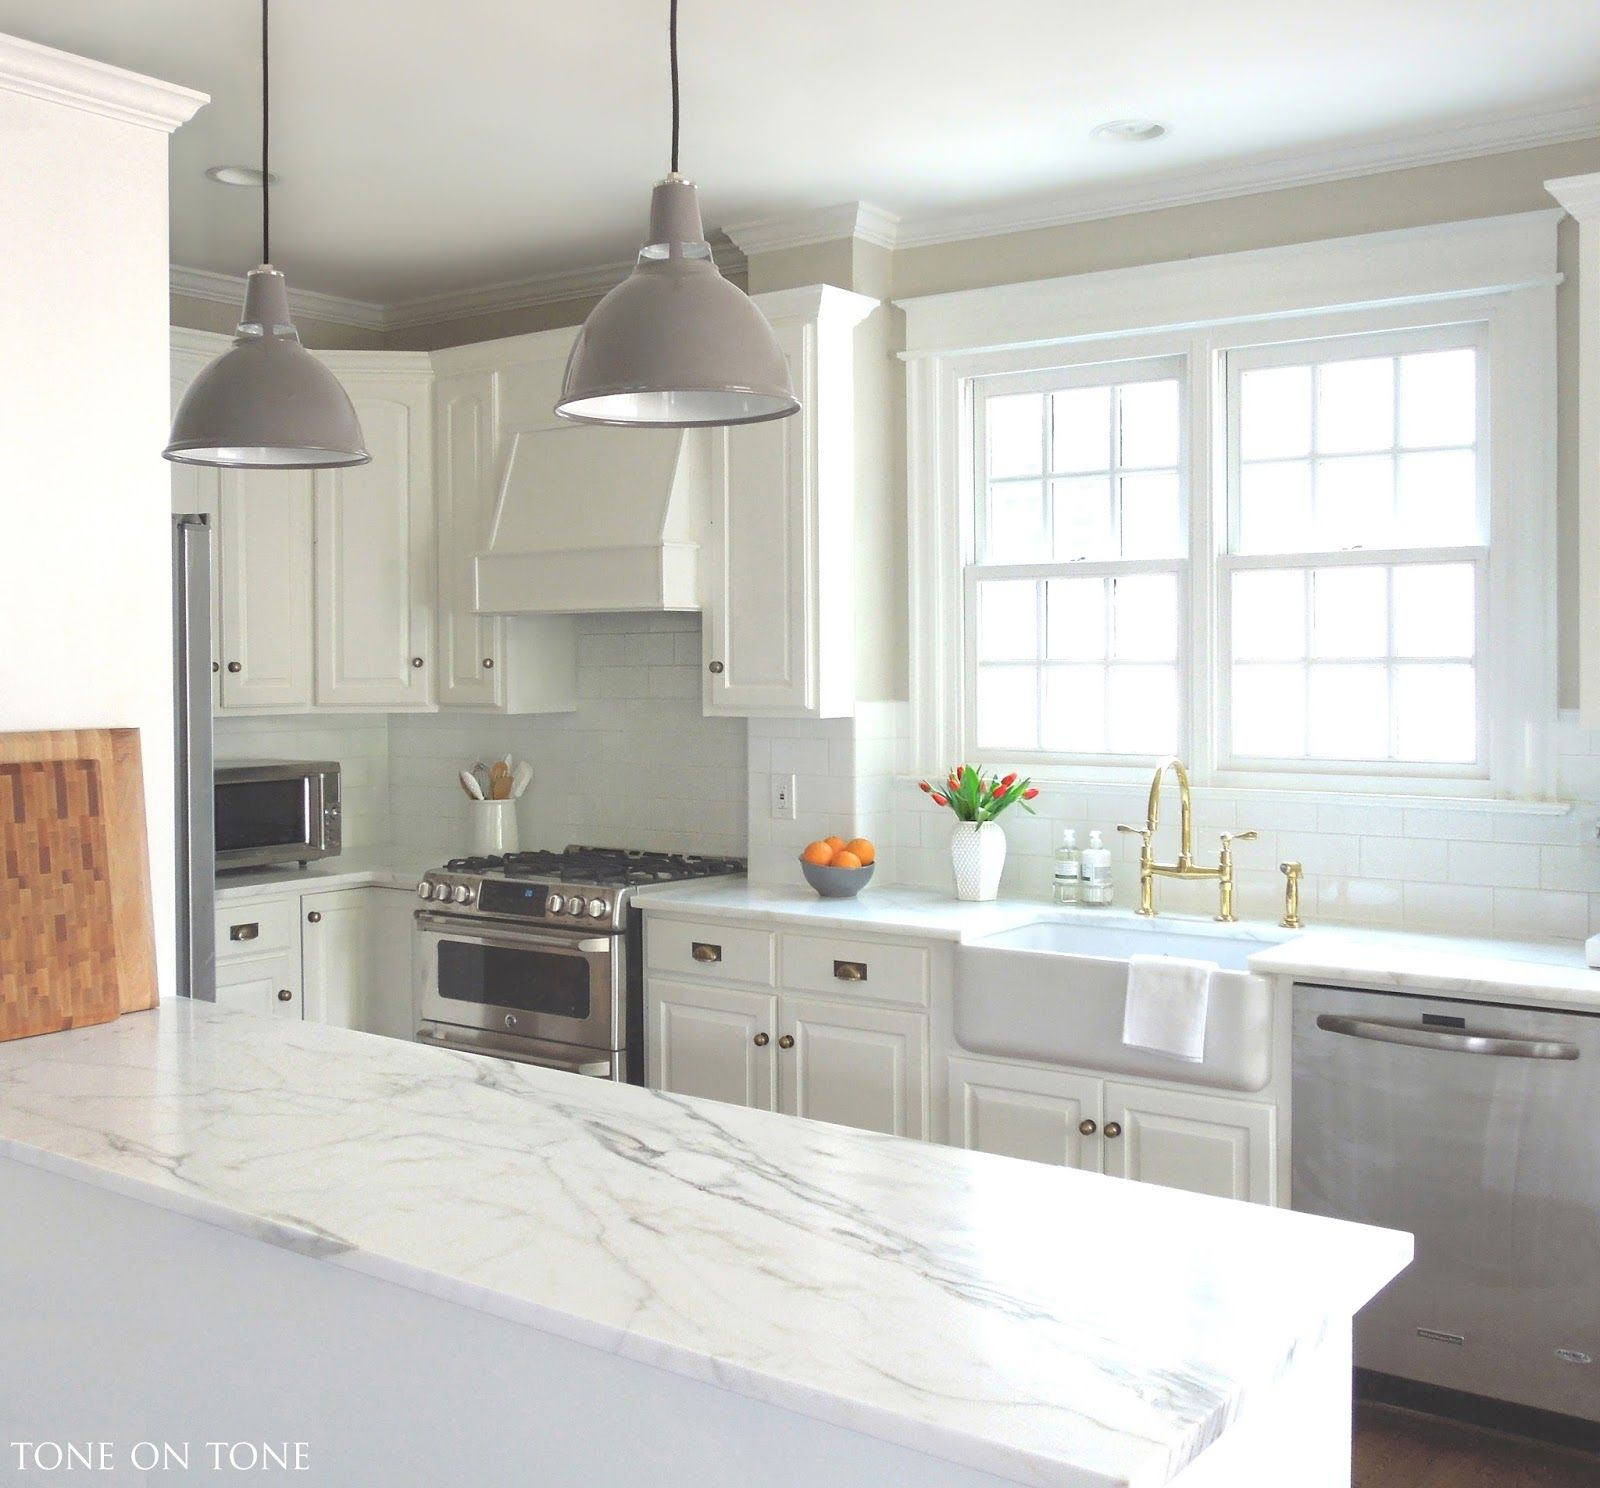 Image Result For U Shaped Kitchen Without Upper Cabinets